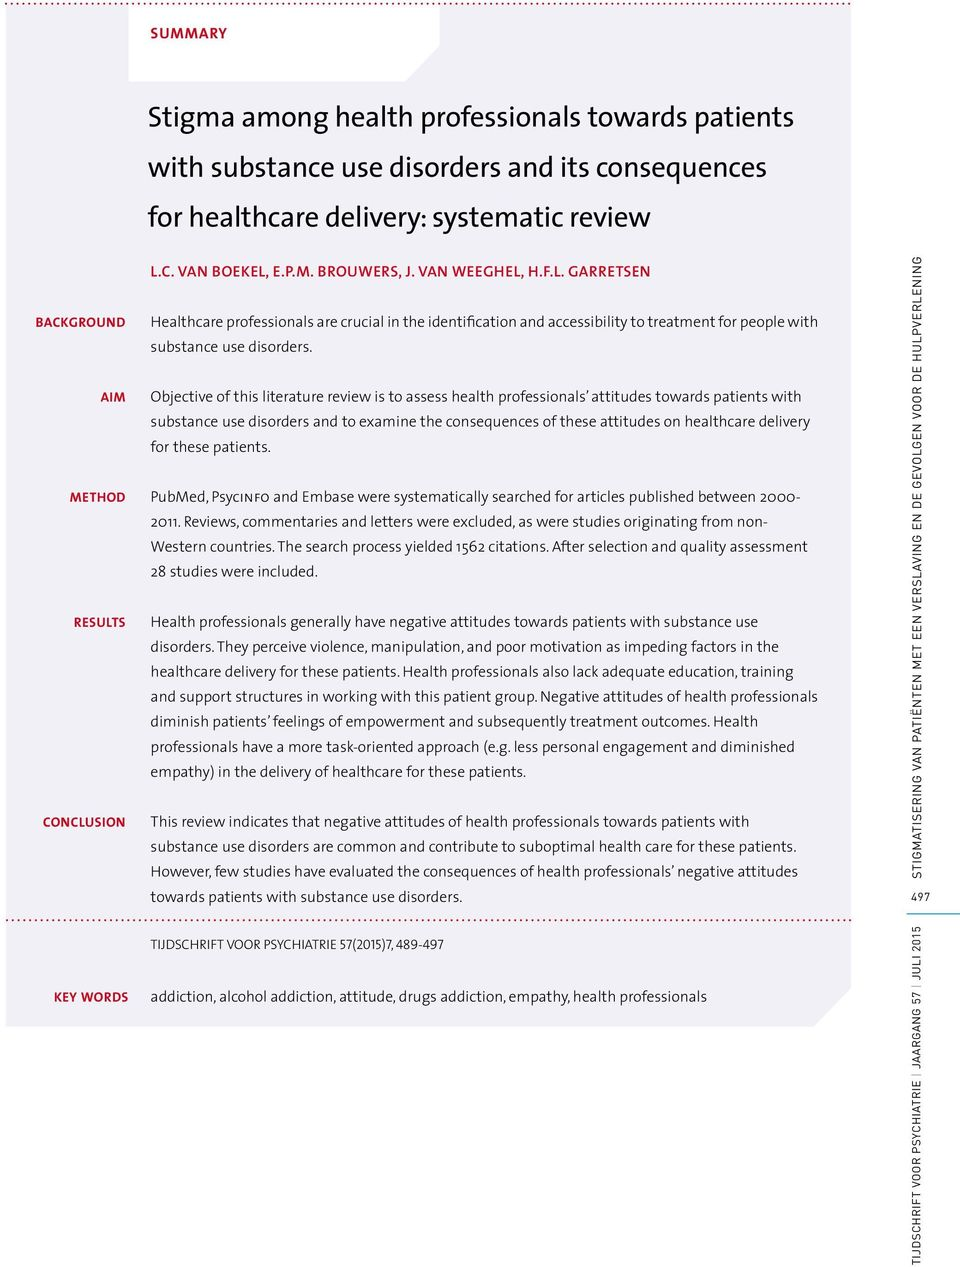 AIM Objective of this literature review is to assess health professionals attitudes towards patients with substance use disorders and to examine the consequences of these attitudes on healthcare